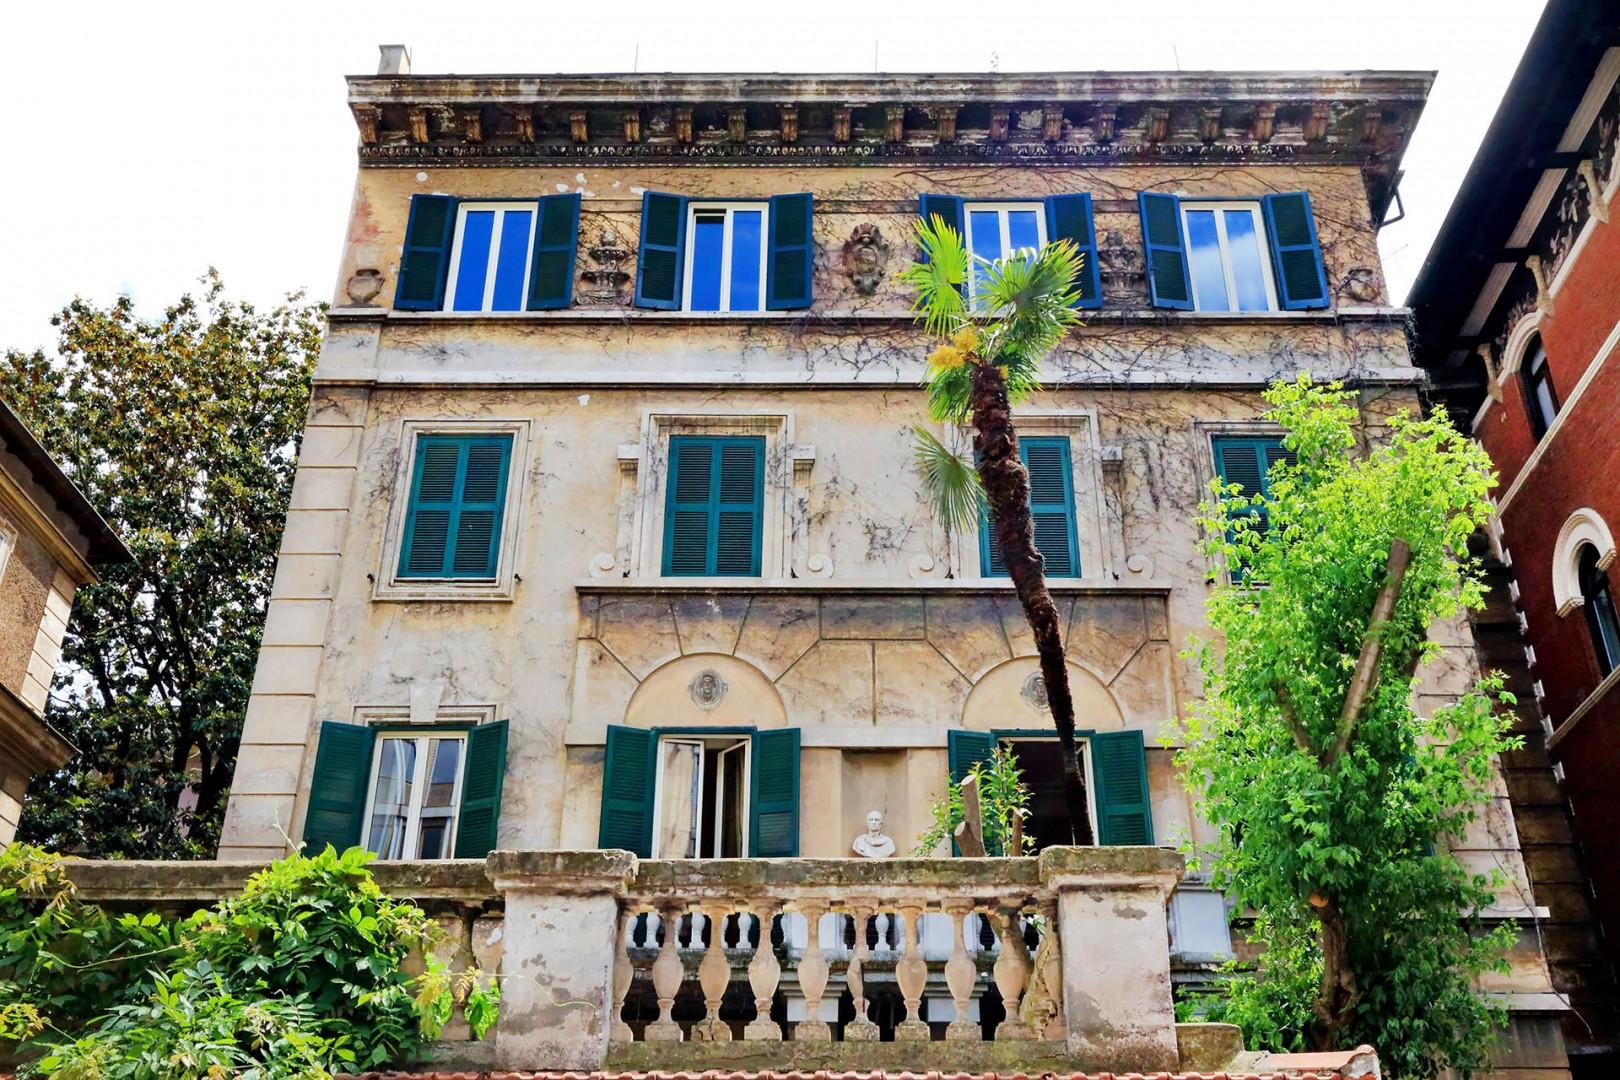 Handsome building were the Elegante apartment is situated.